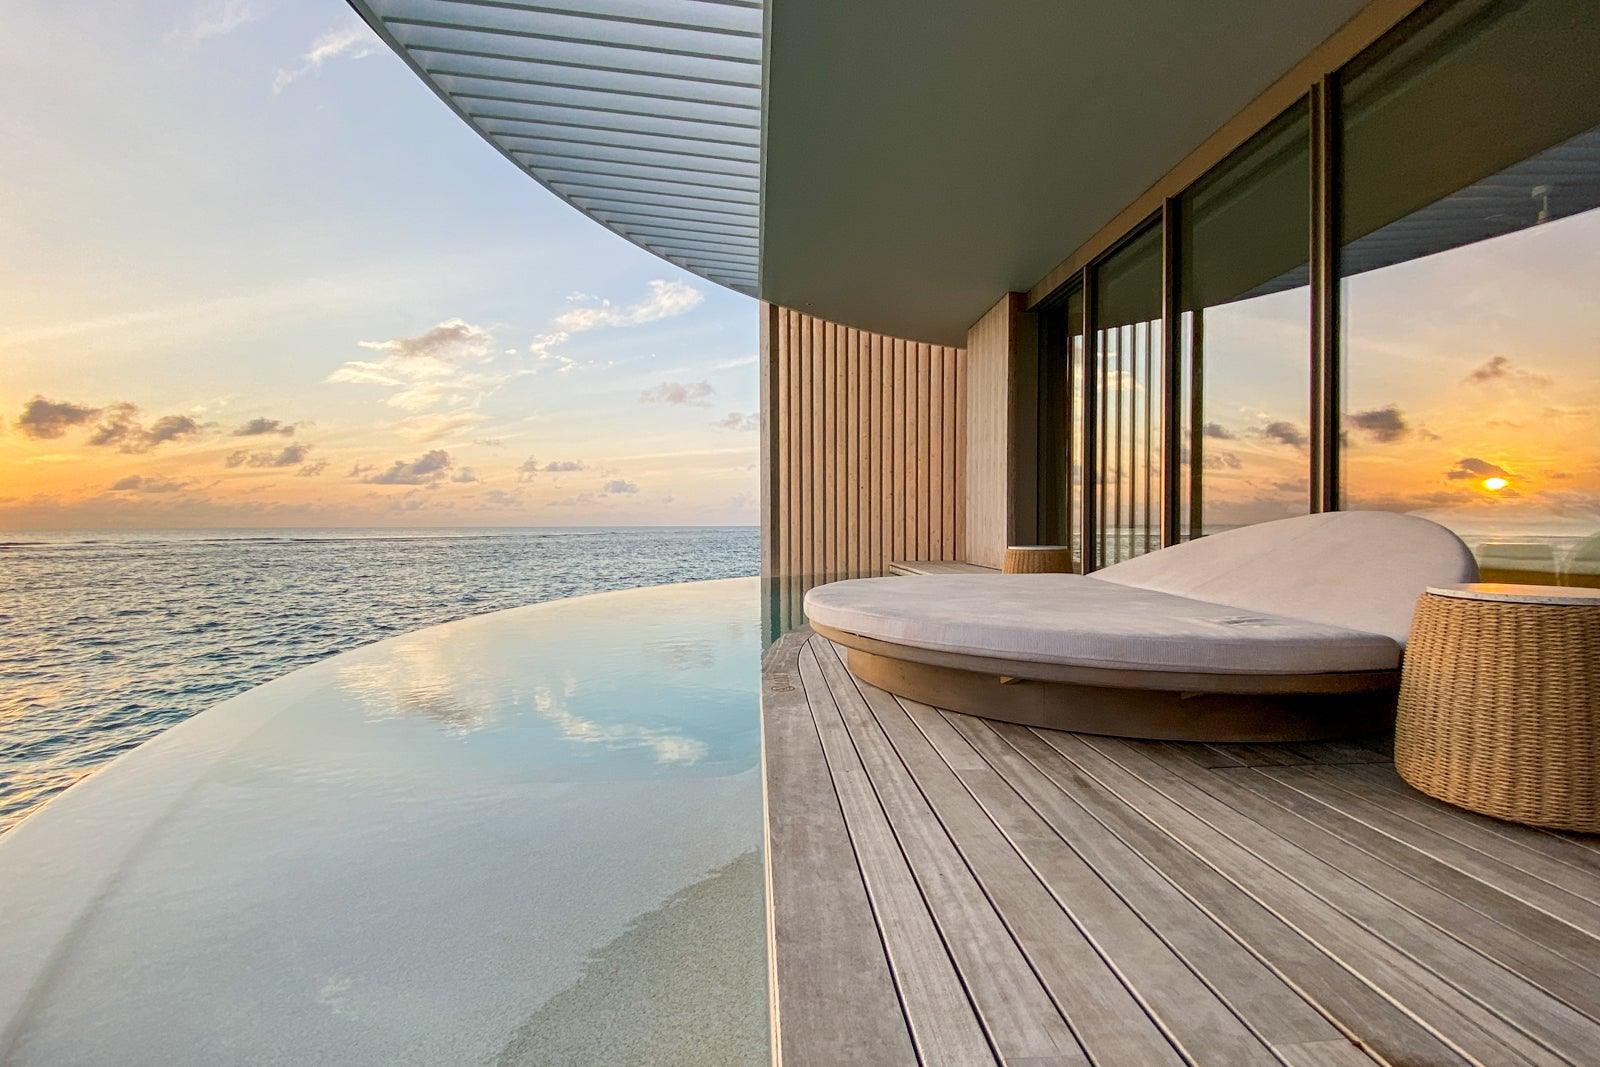 It's all in the details: What it's like to stay at The Ritz-Carlton Maldives, Fari Islands - The Points Guy